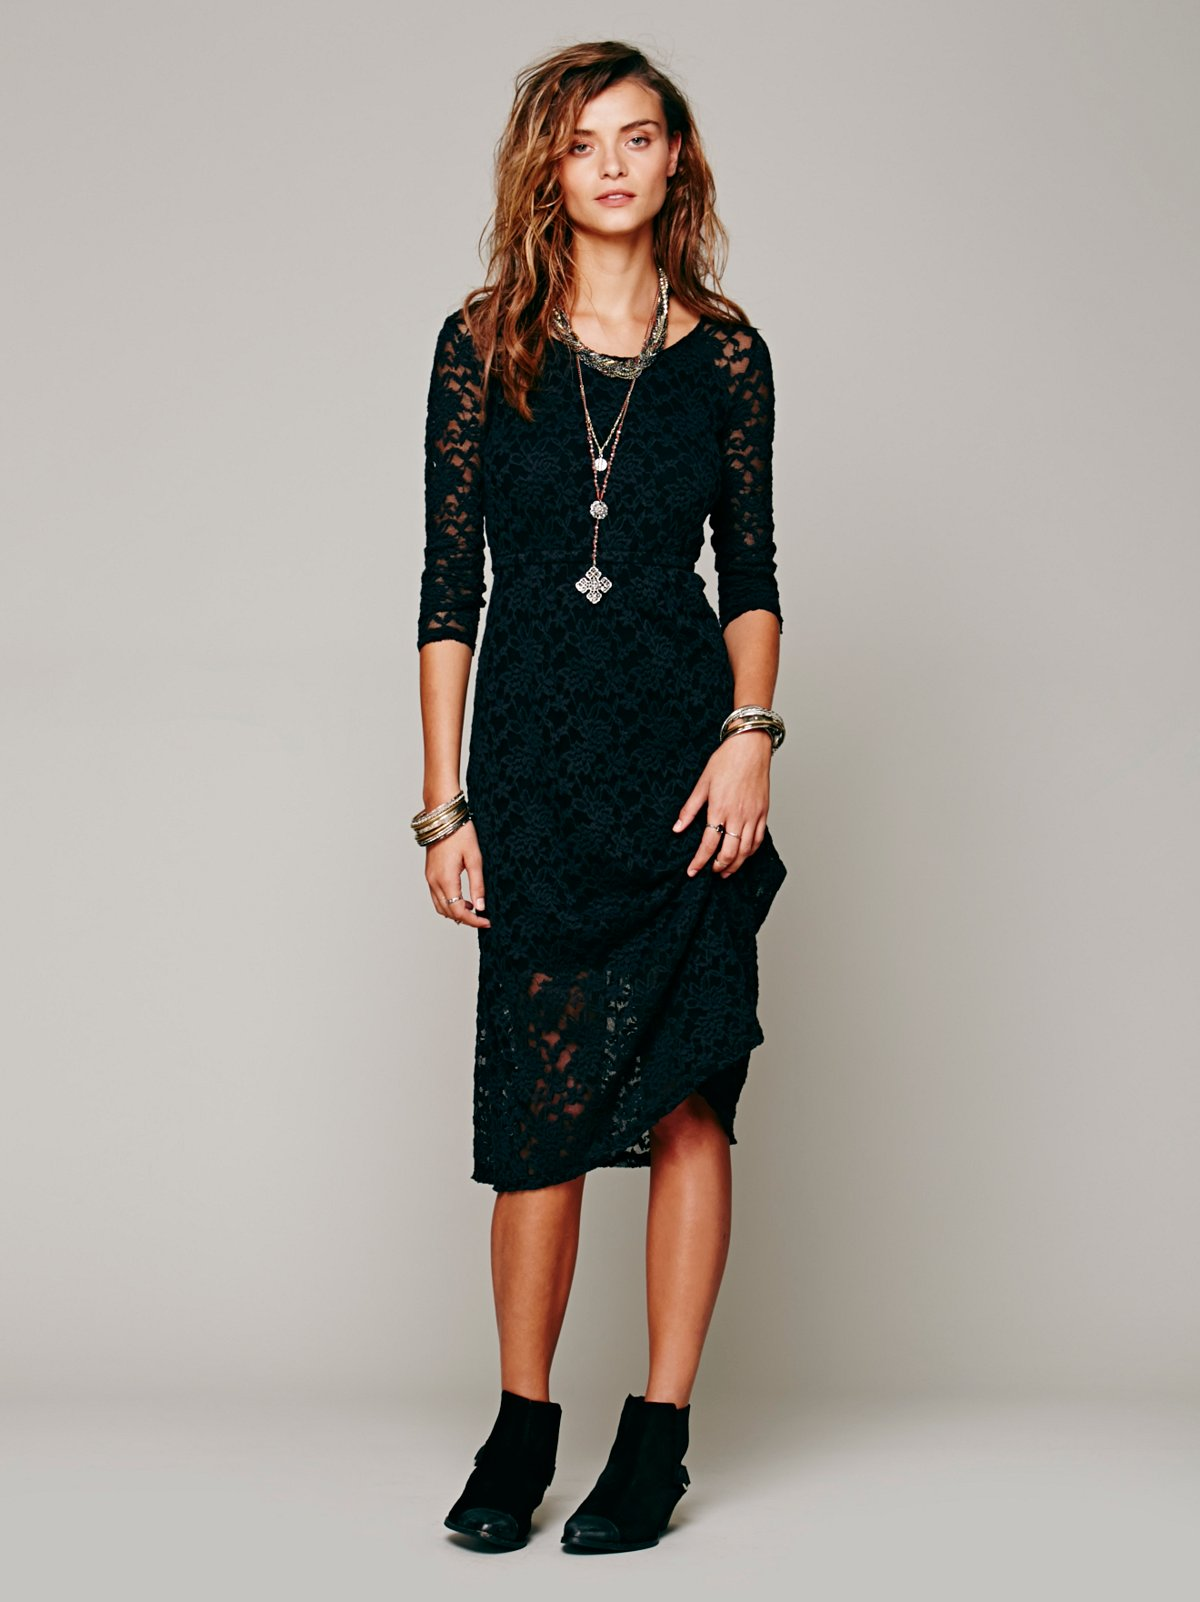 Raindrops Lace Dress